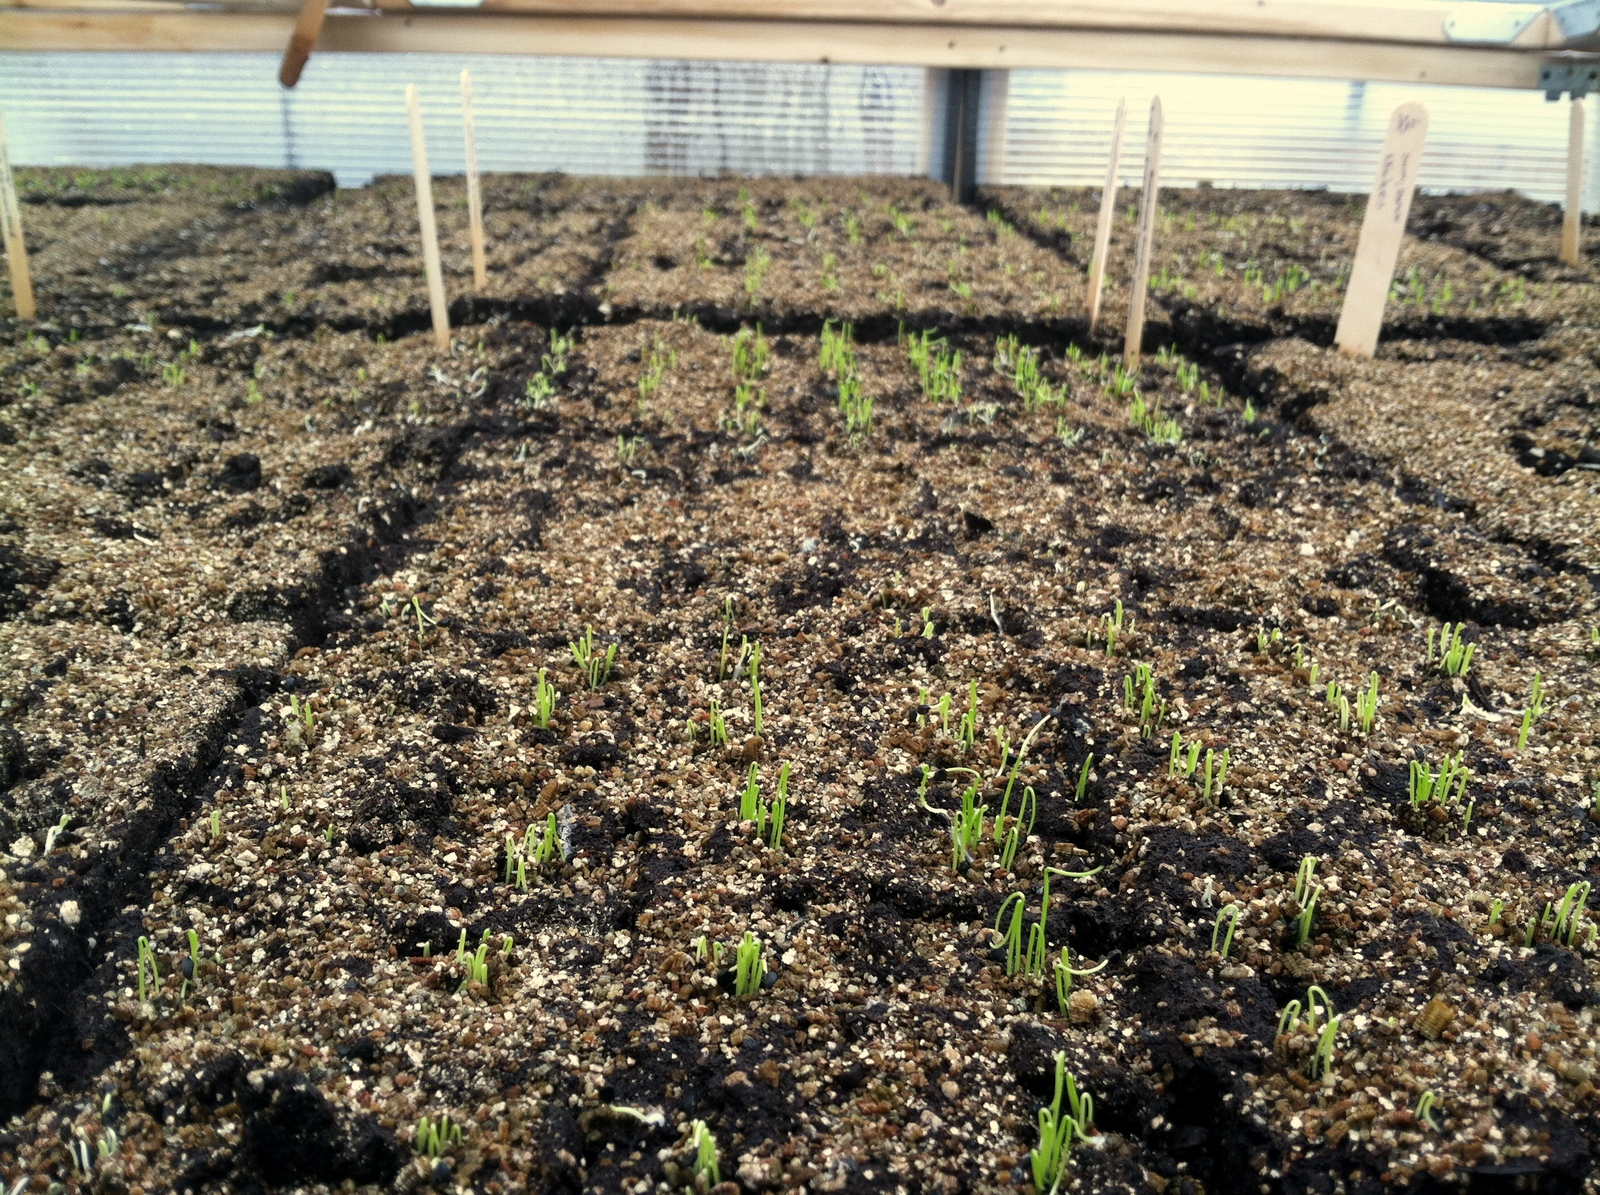 The Onions pop from their soil blocks.